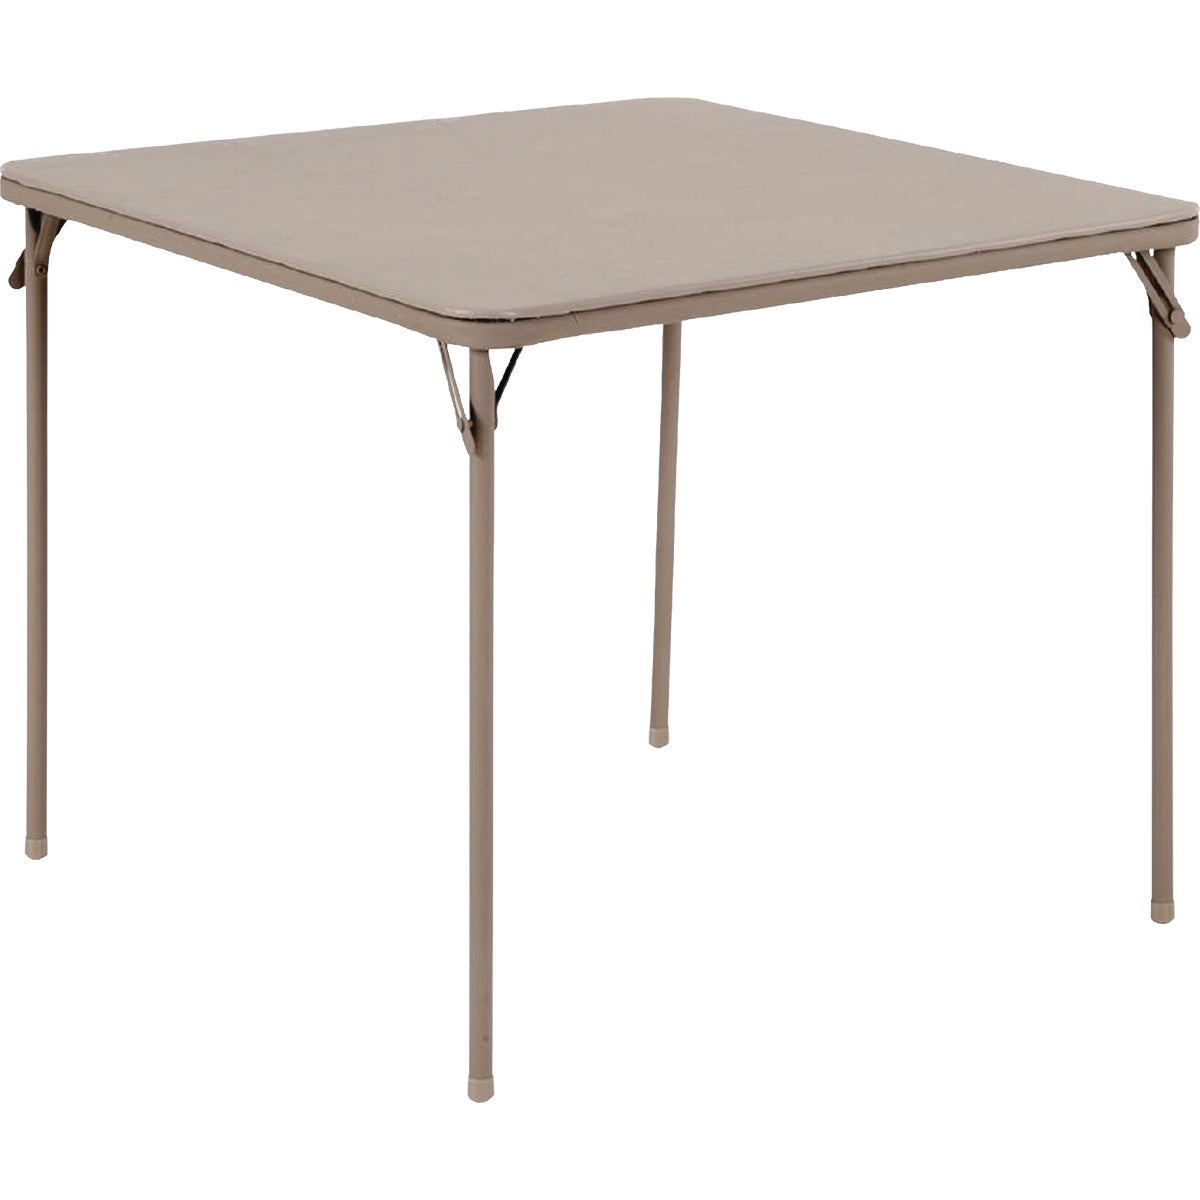 SAND SQ FOLDING TABLE - 14-619-ANT2 by Cosco    J Myalls